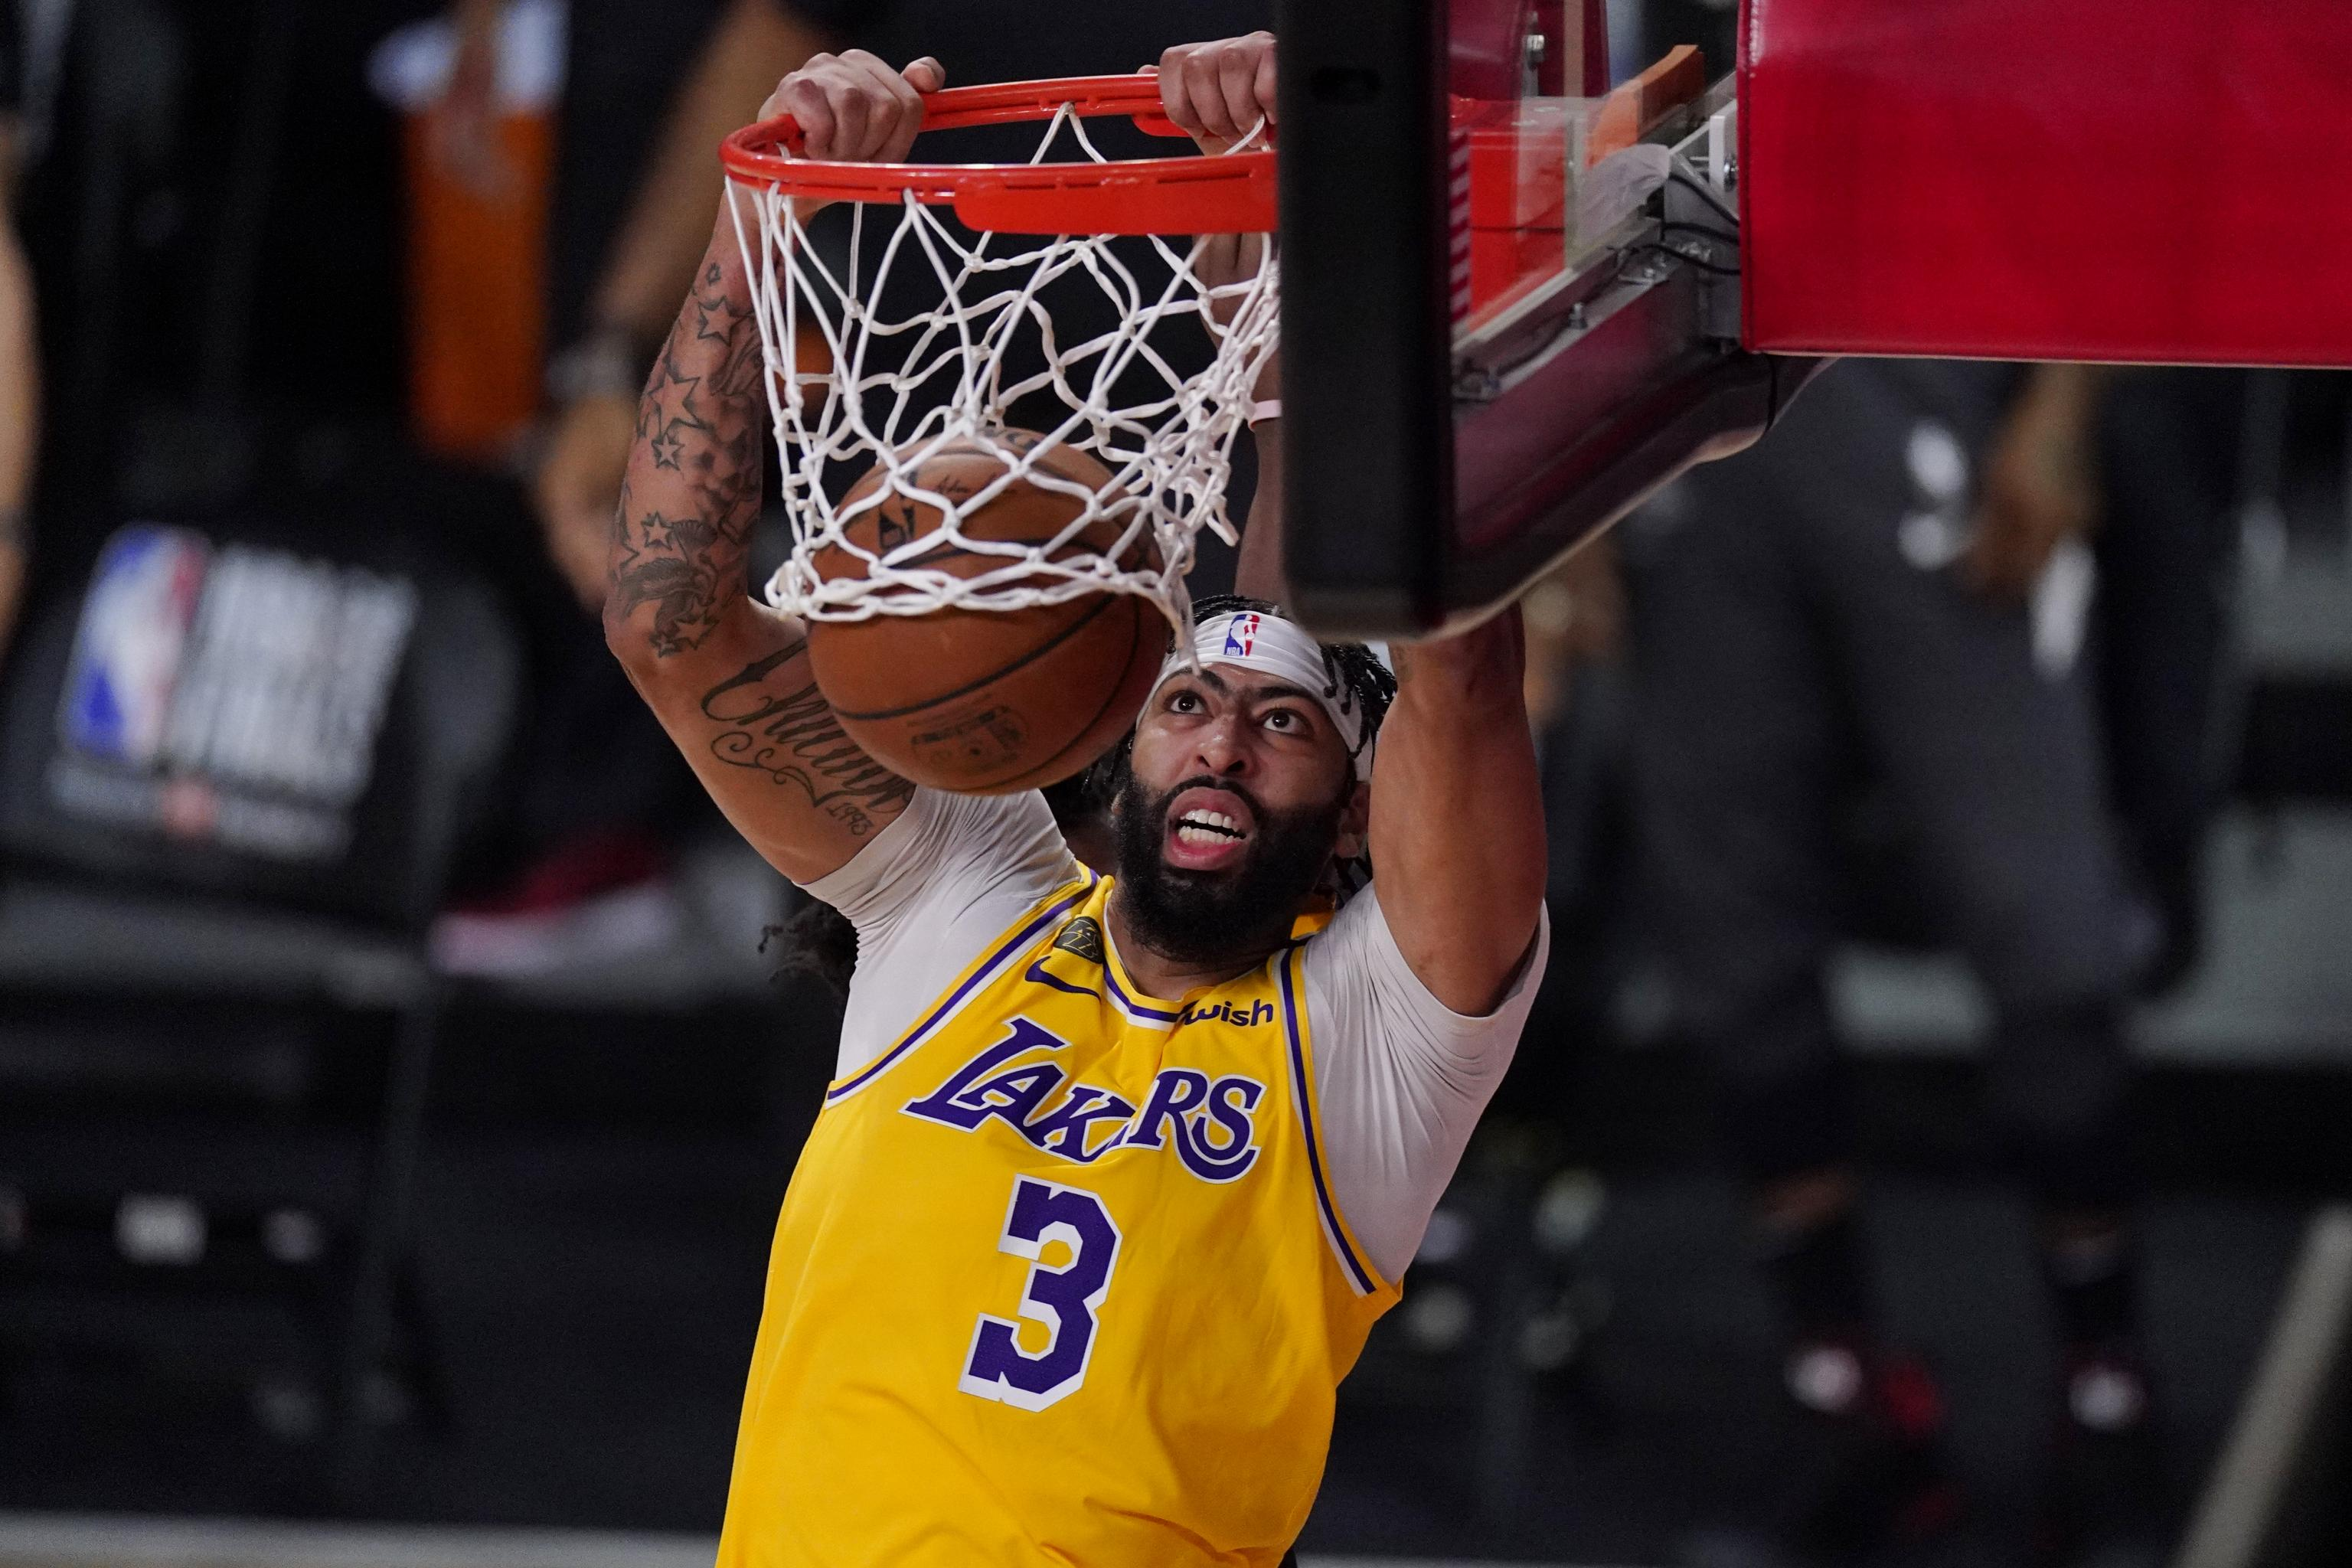 Nba Finals 2020 Heat Vs Lakers Game 2 Vegas Odds Prop Bets And Predictions Bleacher Report Latest News Videos And Highlights